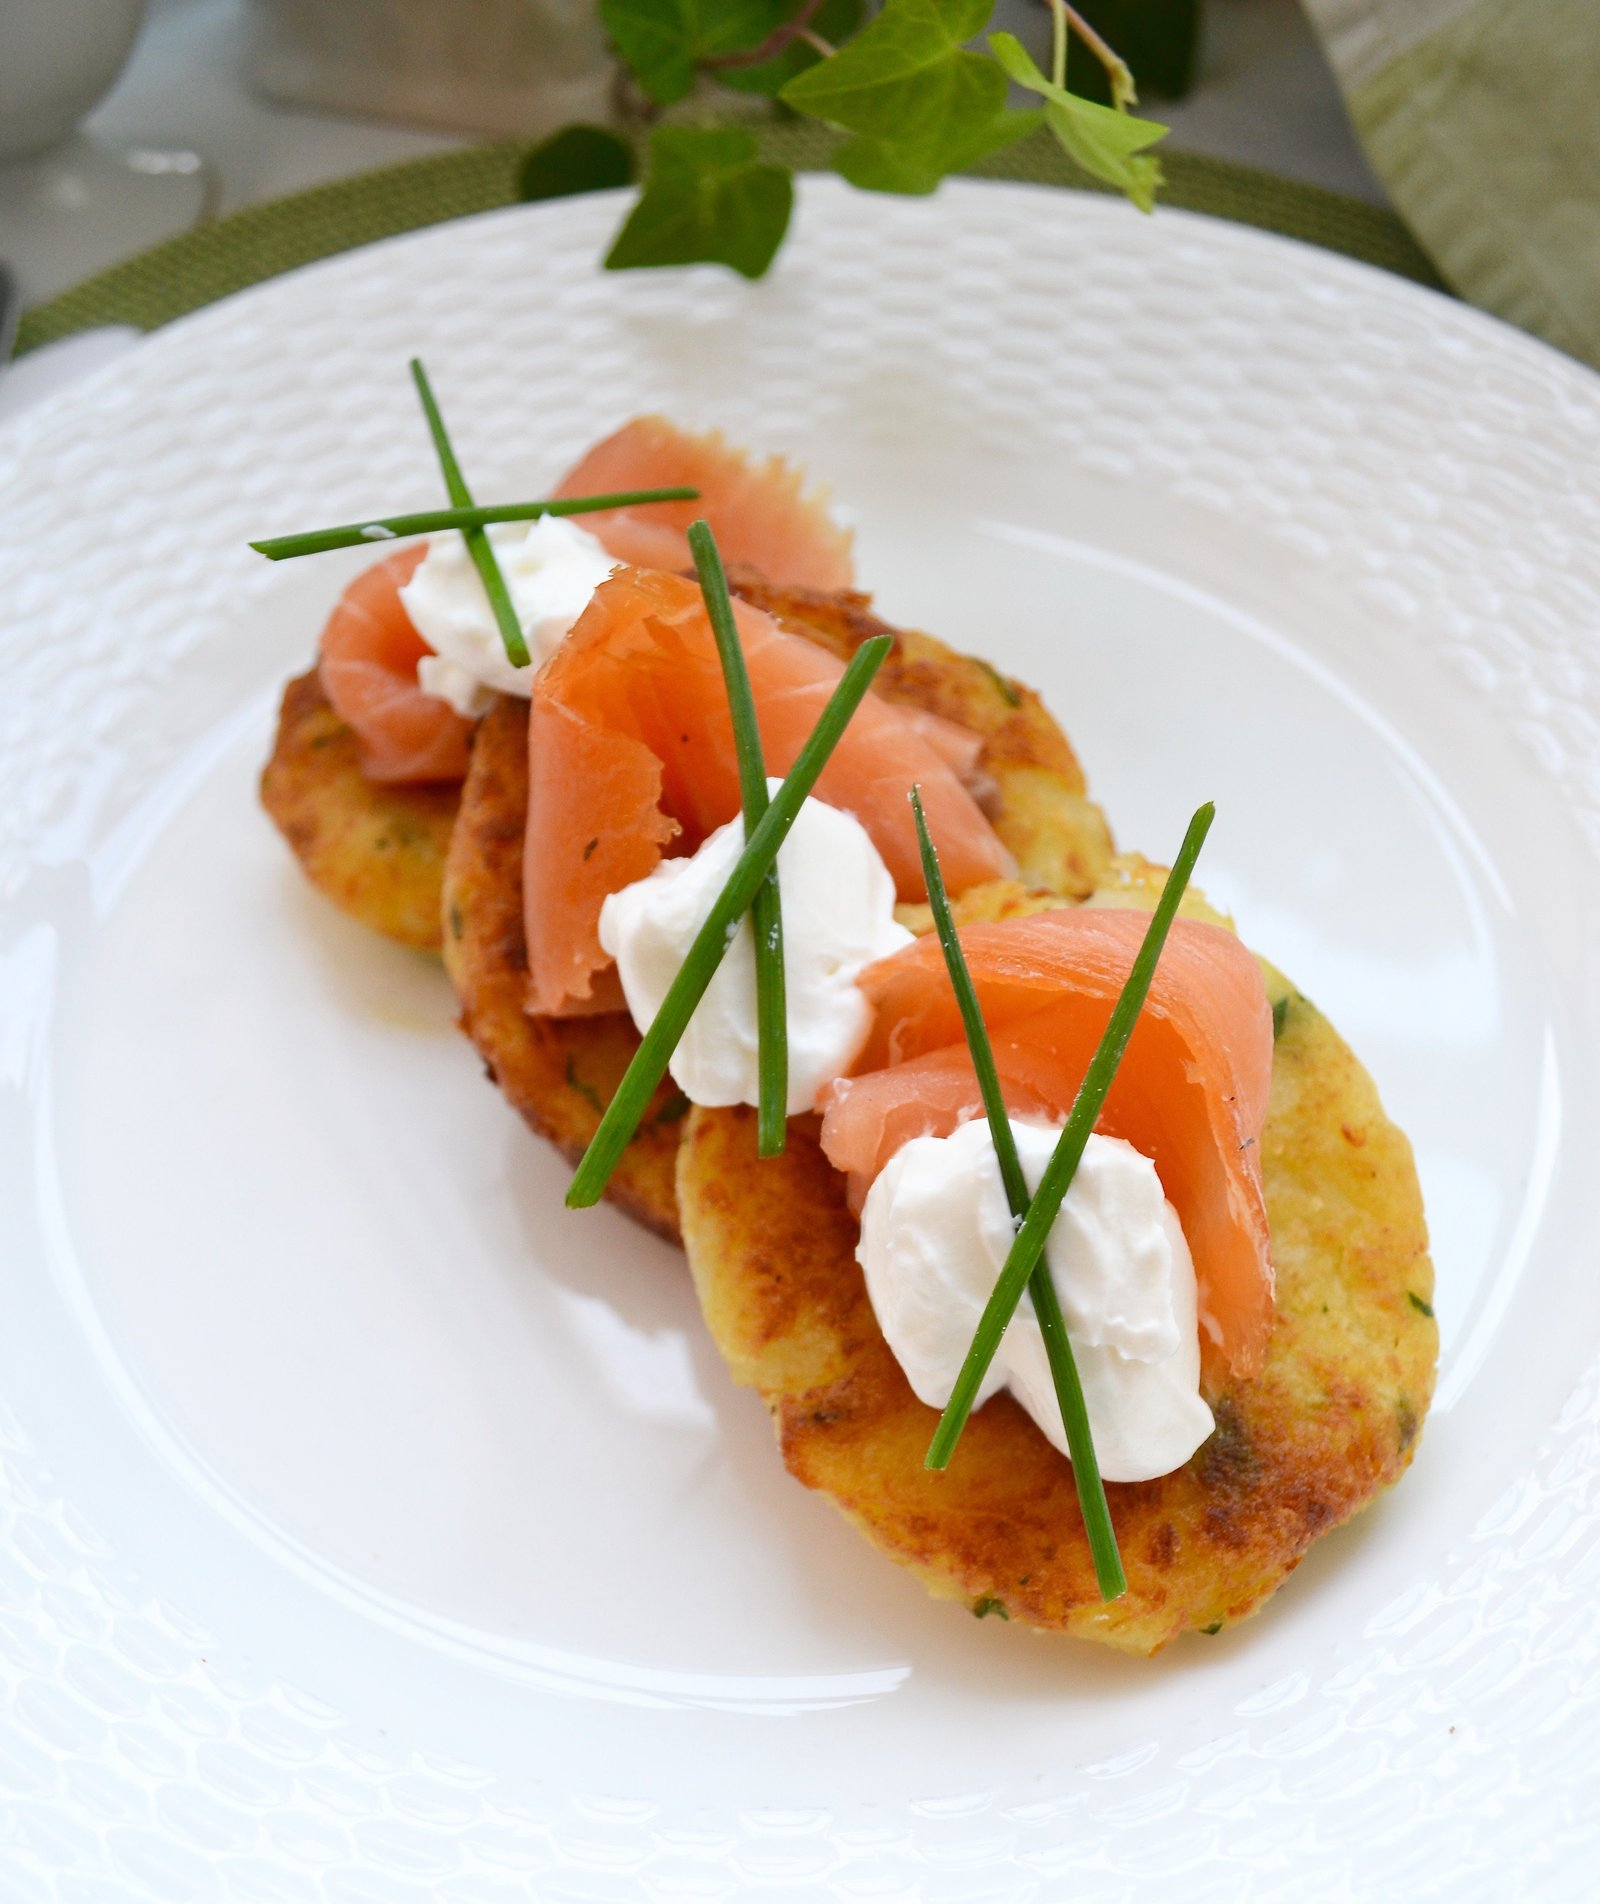 Irish Breakfast Smoked Salmon on Potato Cakes